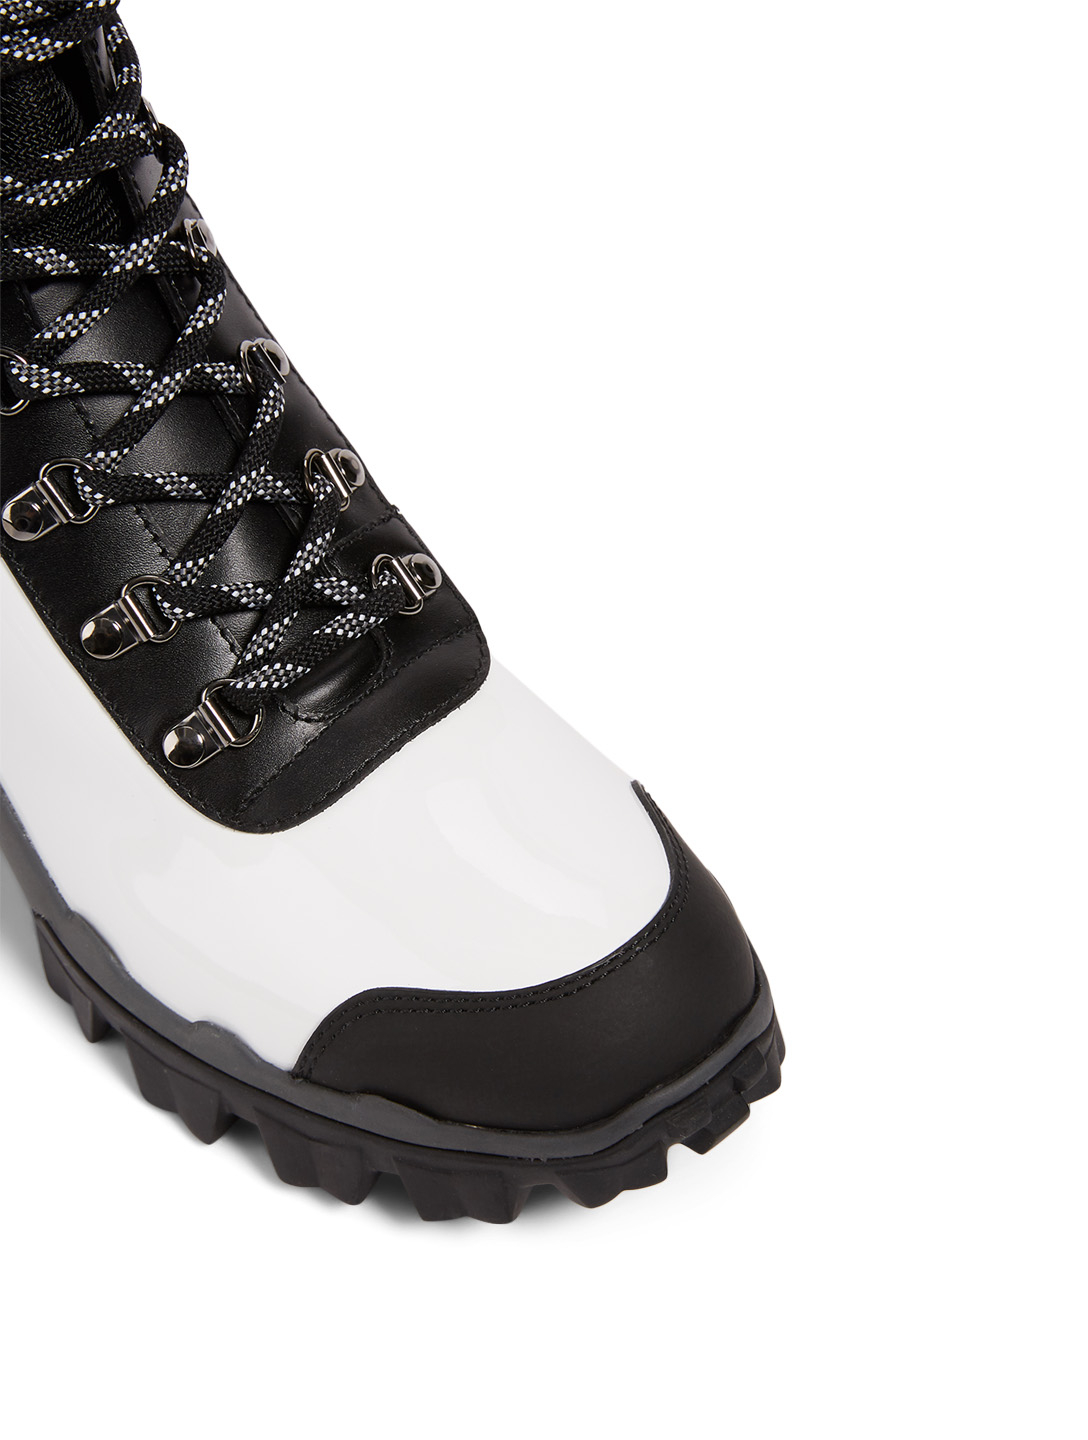 MONCLER Helis Patent Leather Ankle Boots Women's White